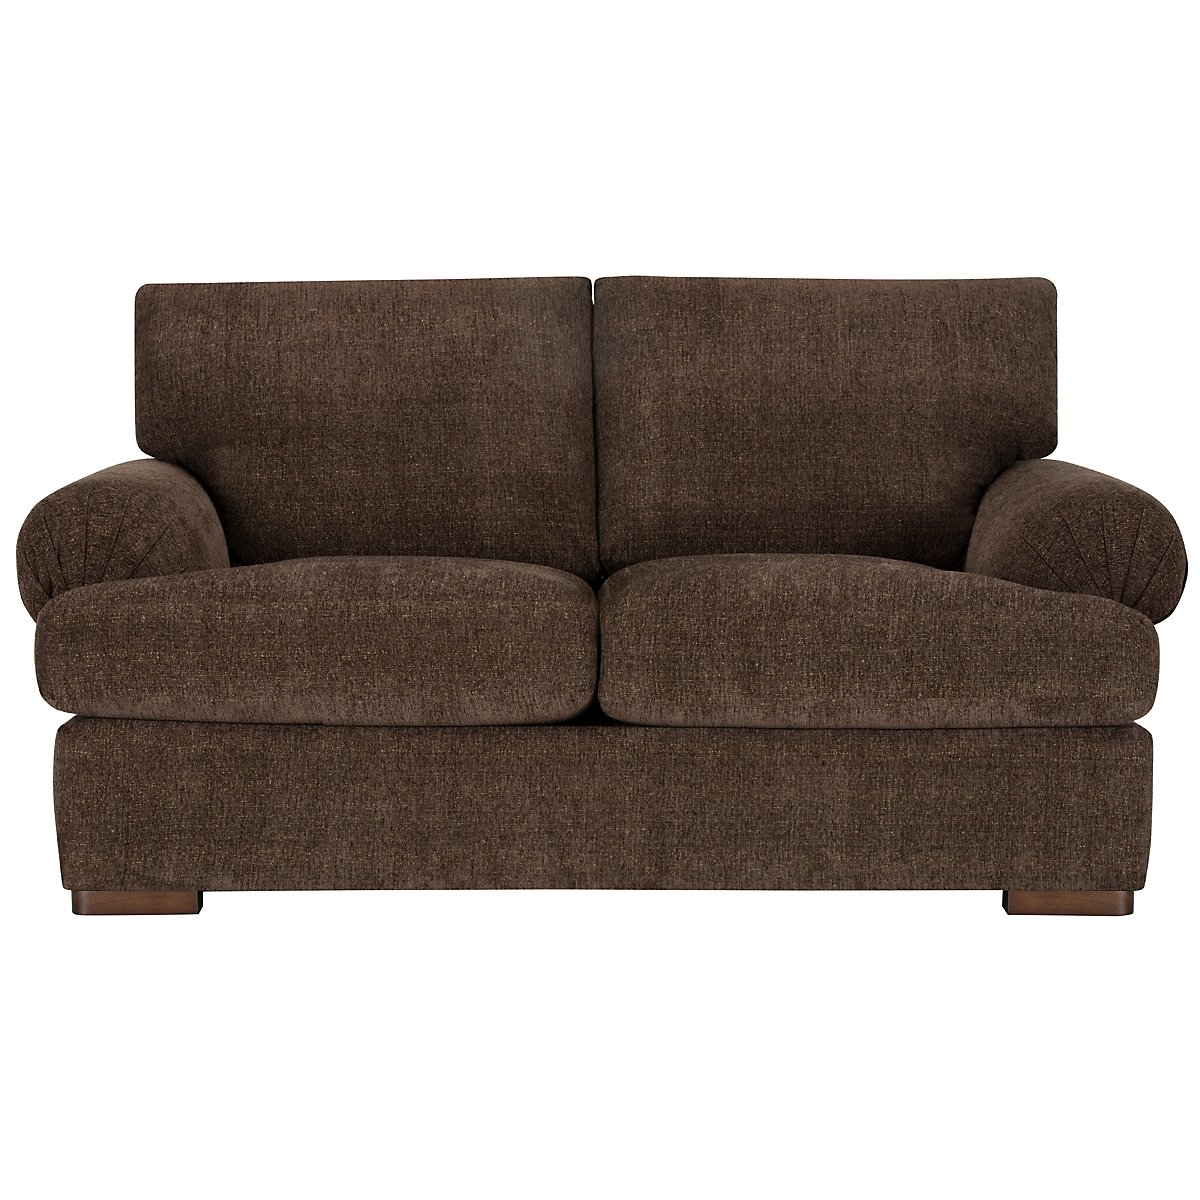 City Furniture Belair Dk Brown Microfiber Loveseat